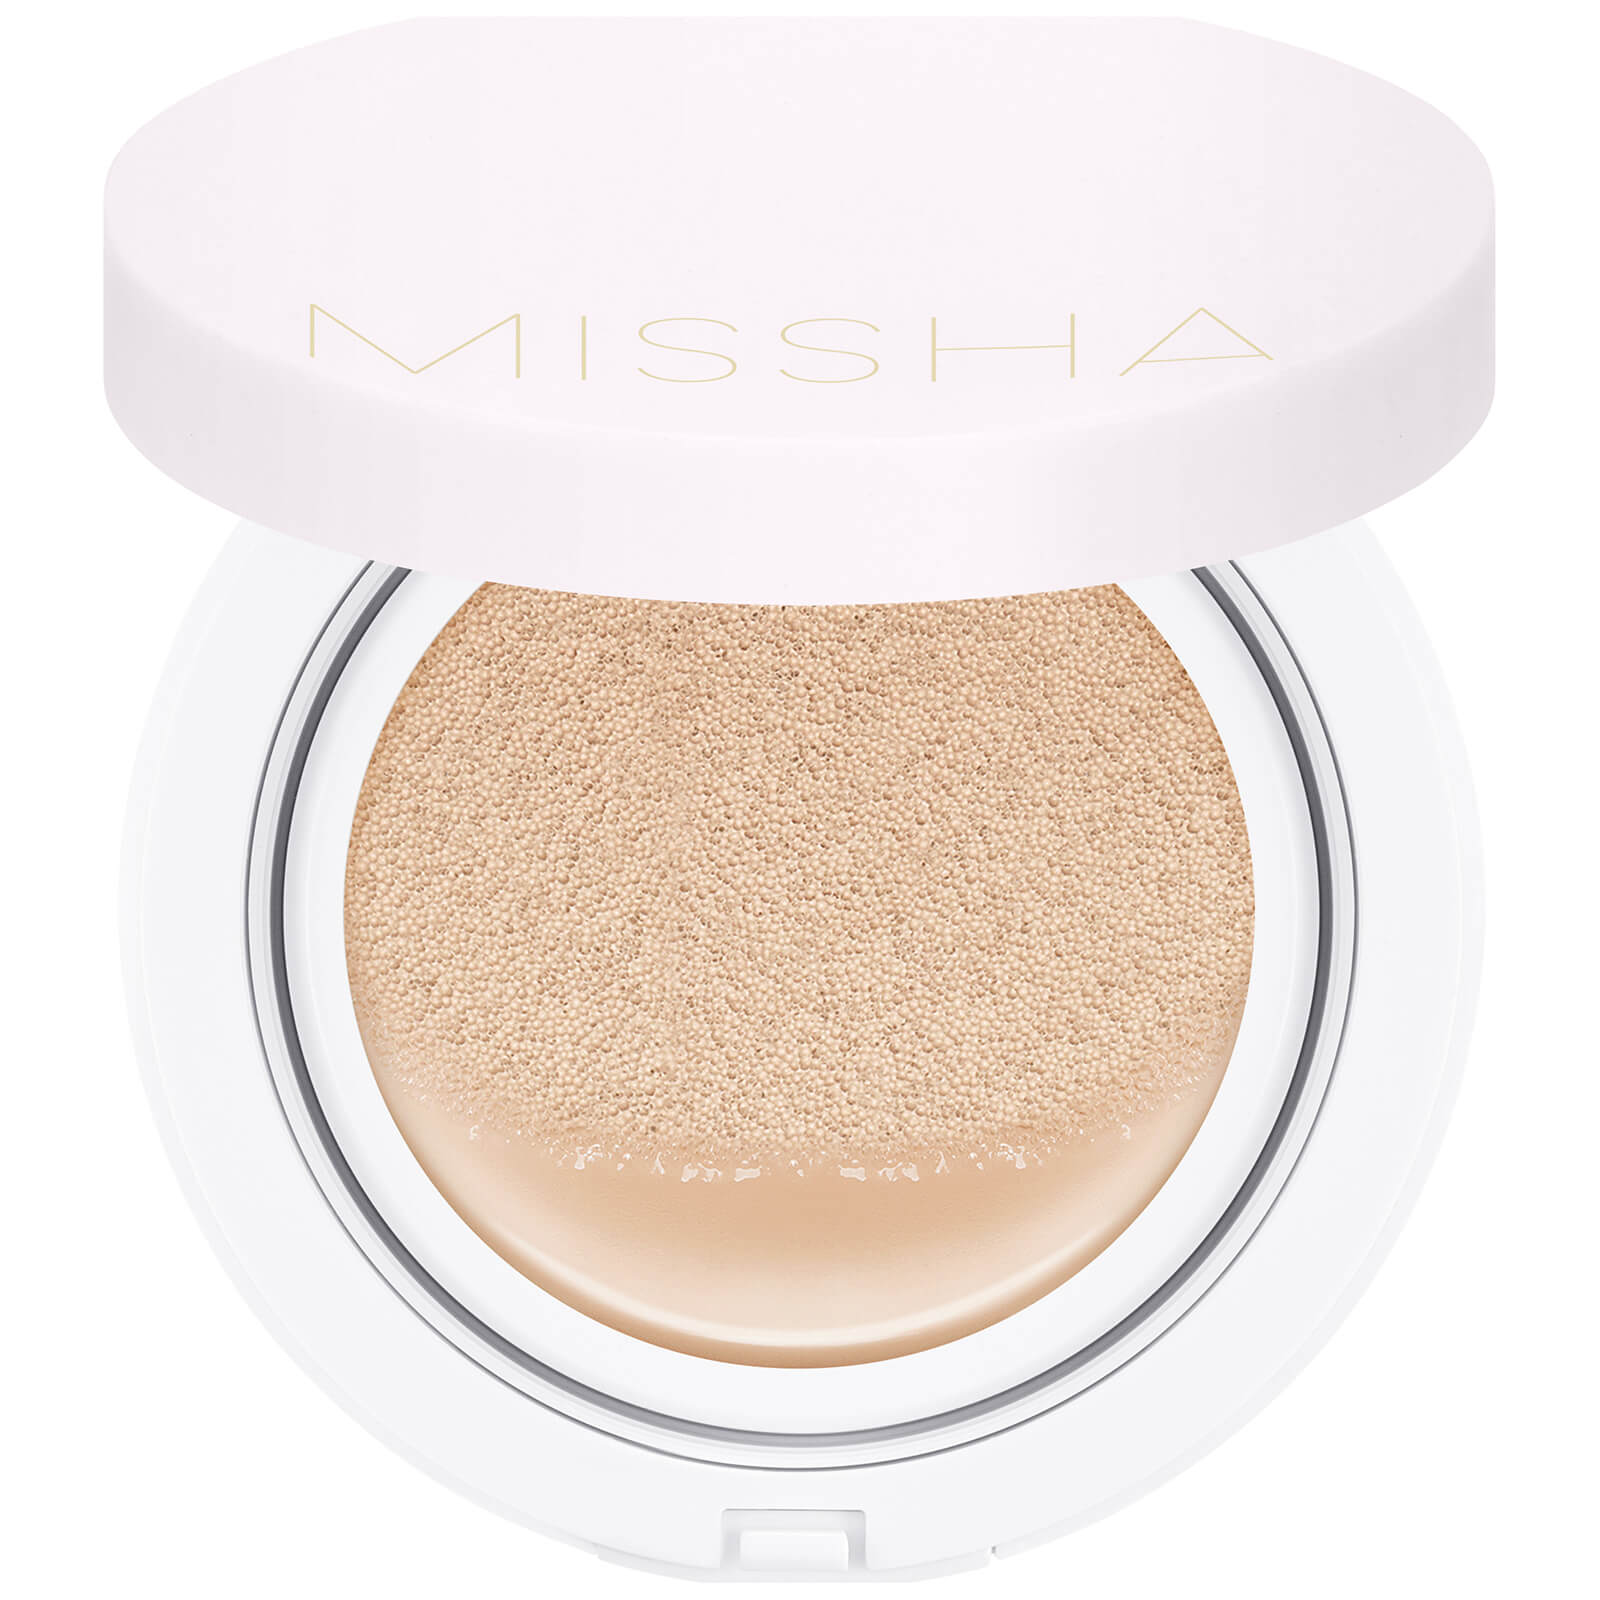 Missha Magic Cushion Cover Lasting Spf50 Pa No 21 15g